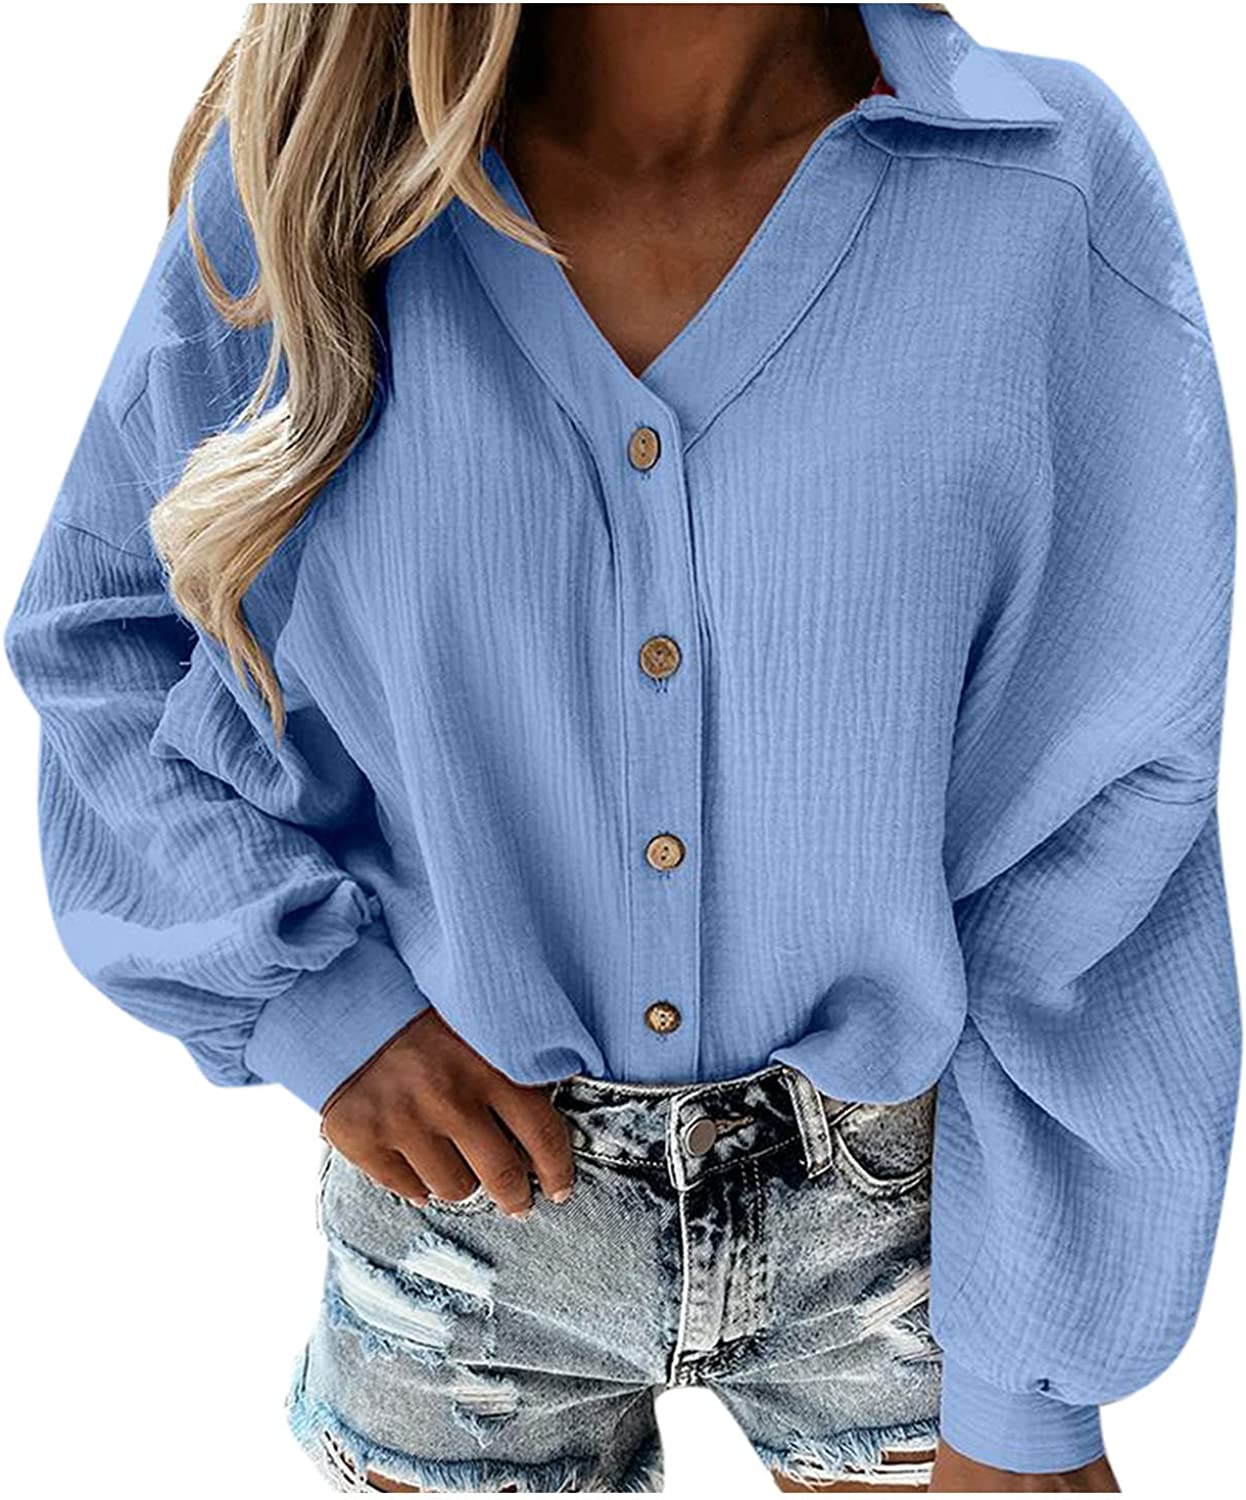 Sweatshirt Women Trendy Button Down Pullover Long Sleeve Sexy V Neck Oversized Graphic Sweatshirts for Women Plus Size